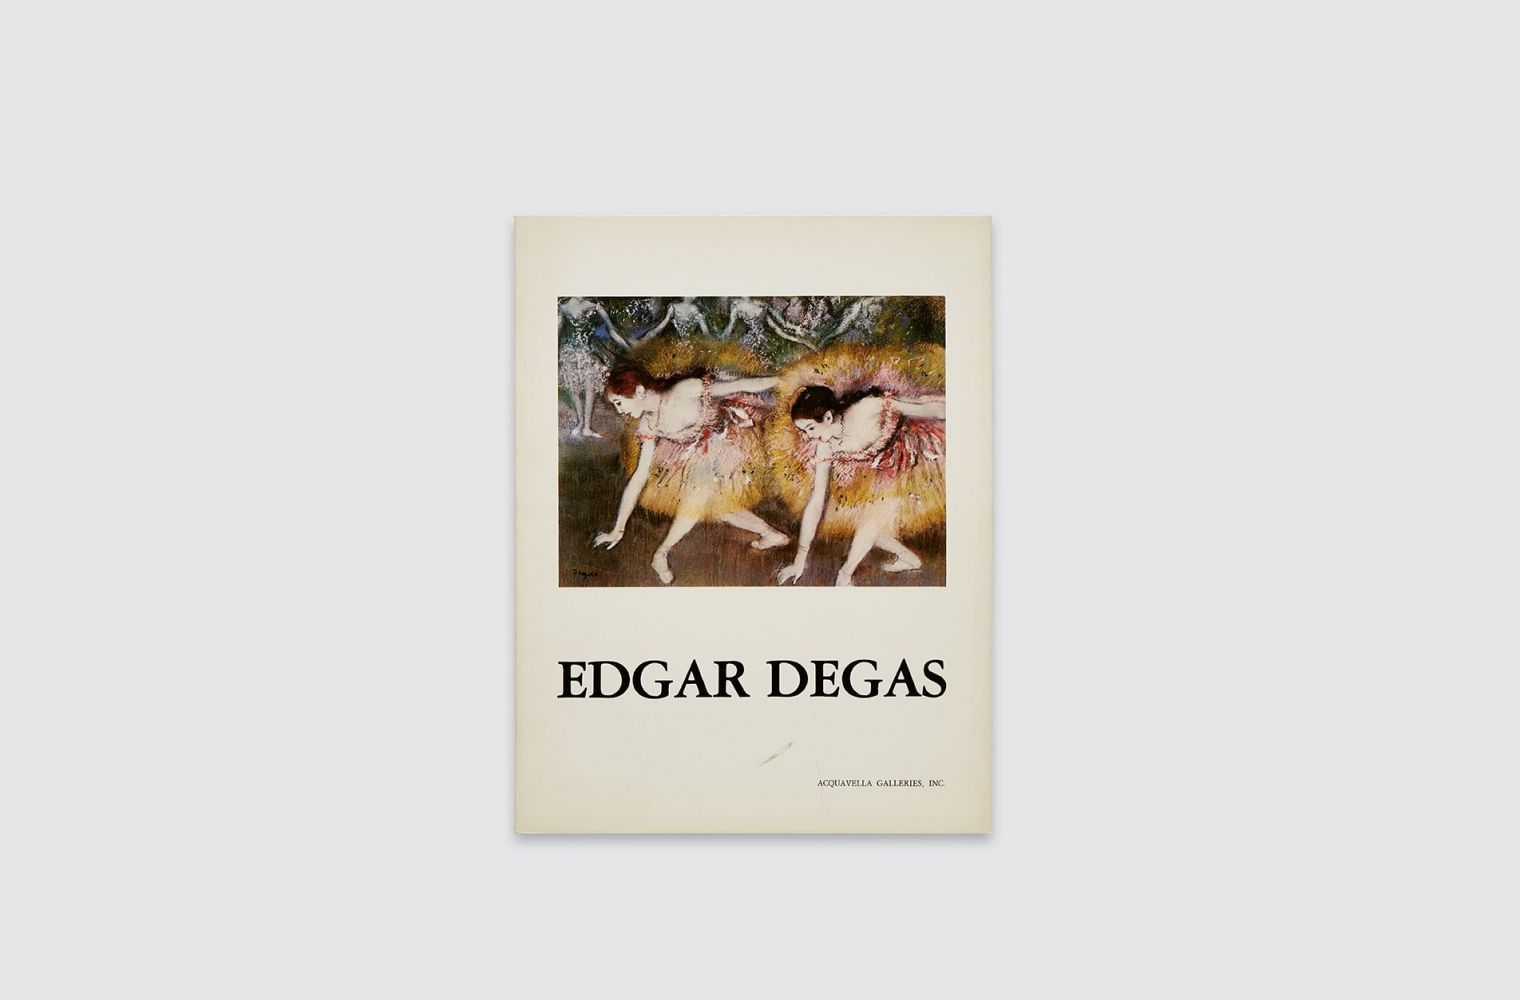 Catalogue for Degas